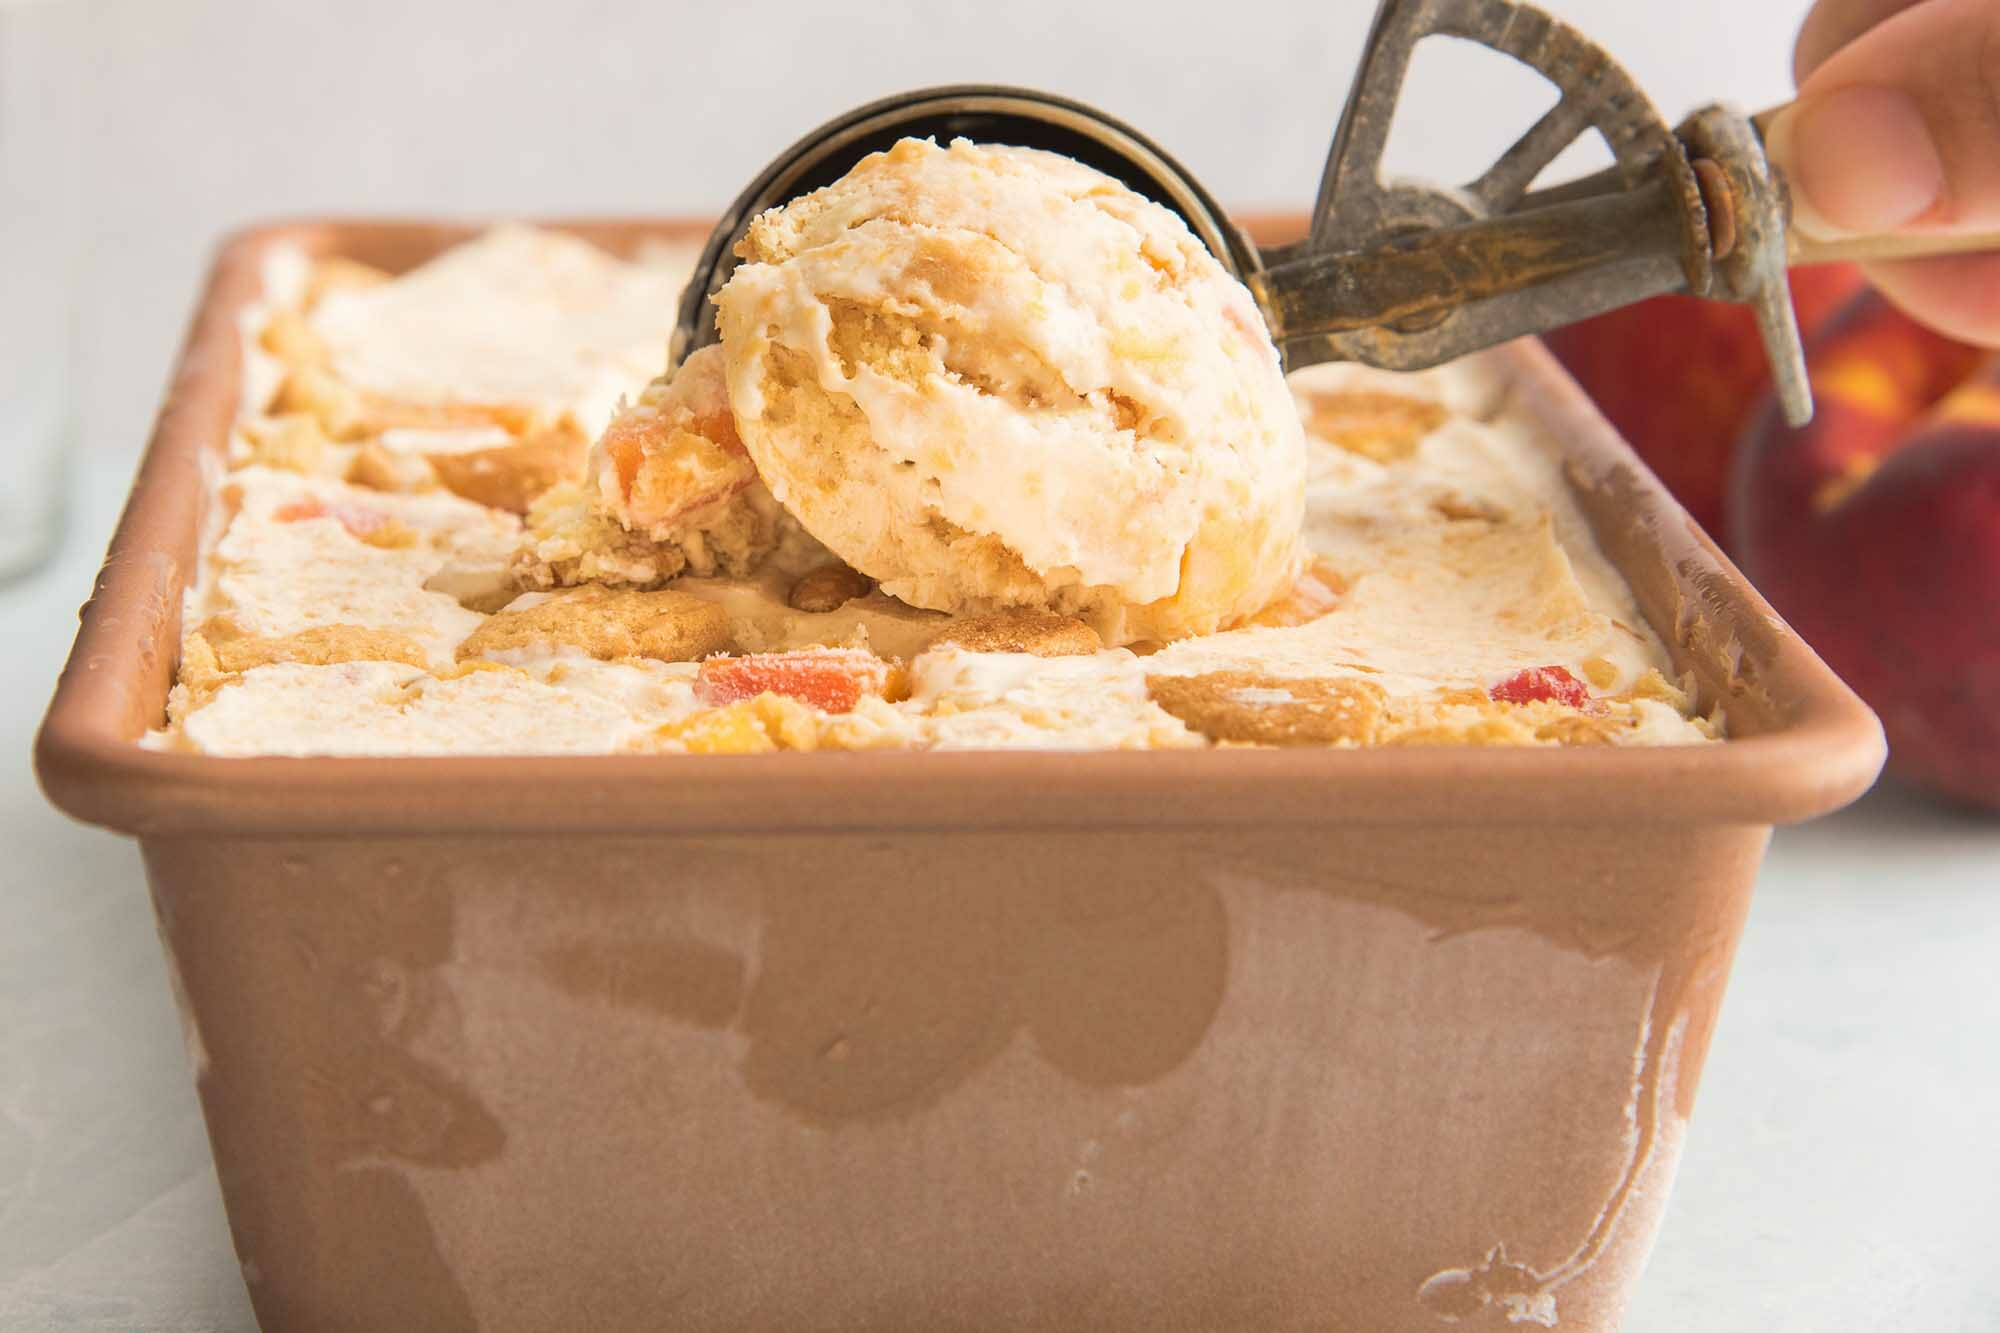 Peach cobbler ice cream is being scooped and chopped peaches are visible.